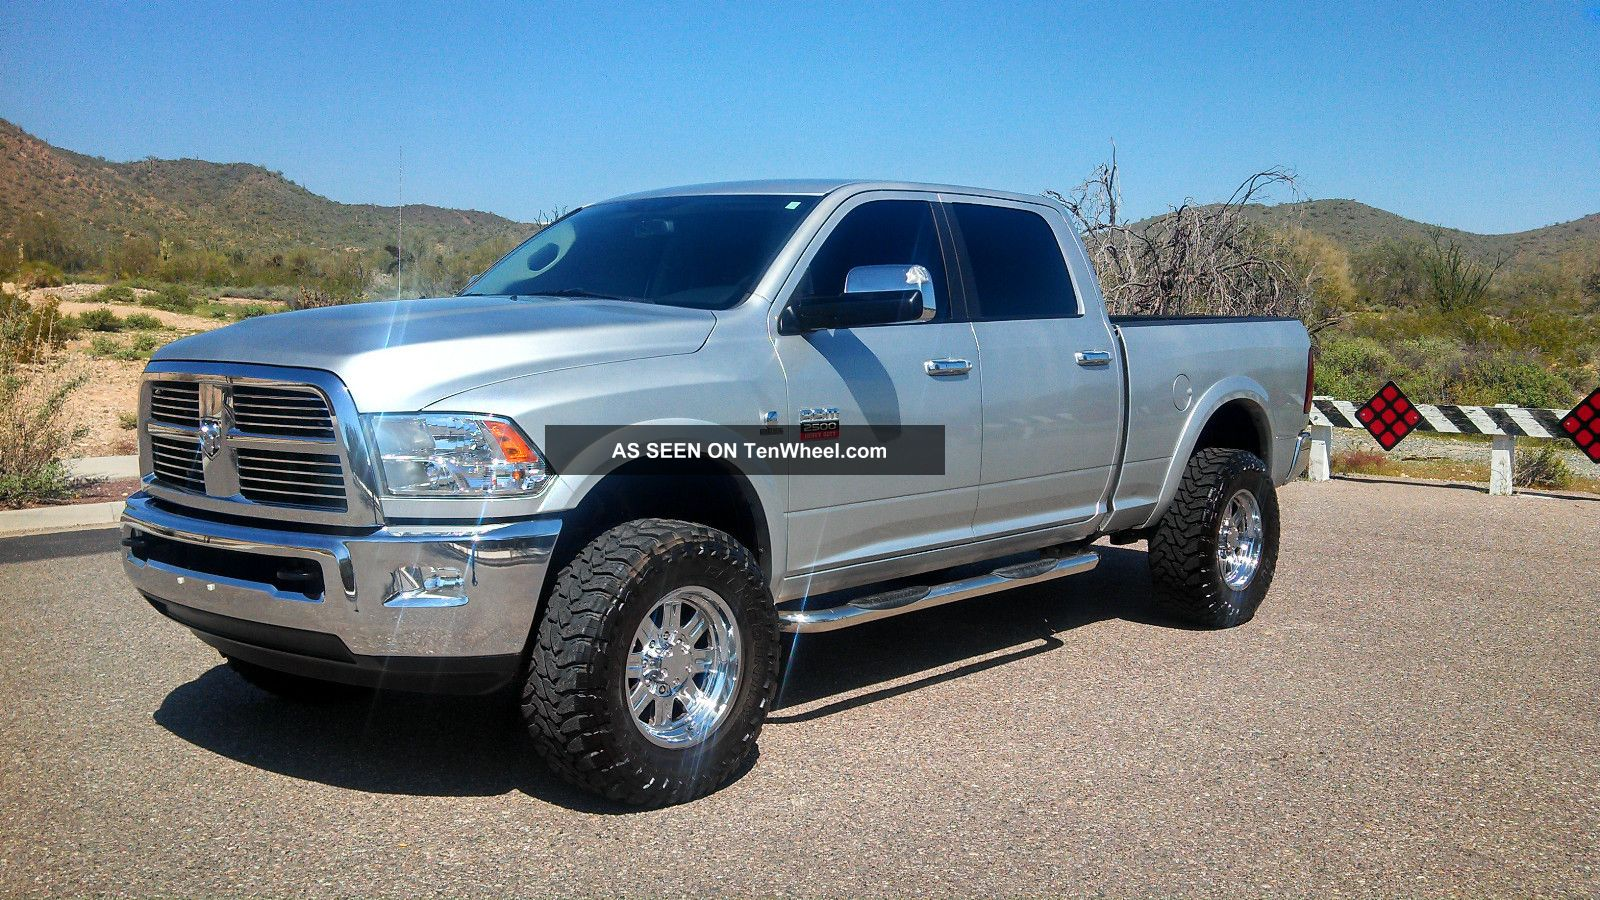 2011 dodge ram 2500 crew cab 4x4 laramie diesel. Black Bedroom Furniture Sets. Home Design Ideas